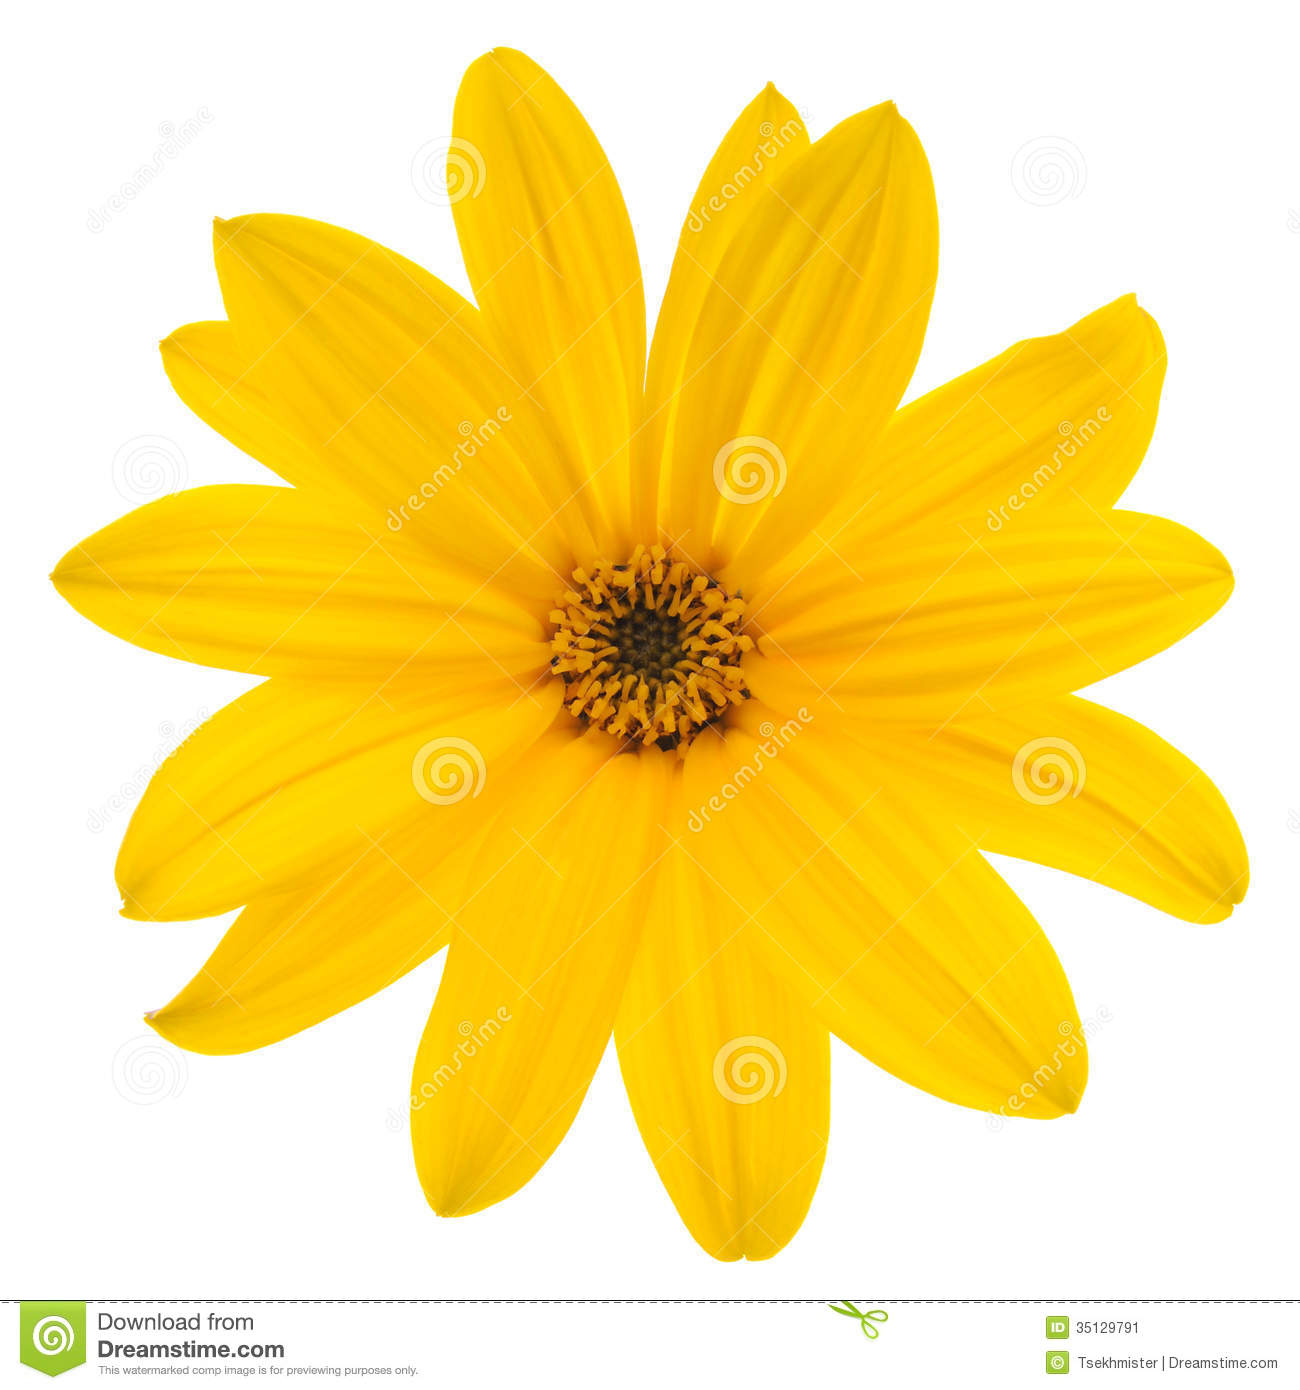 Yellow Flower Stock Image - Image: 35129791